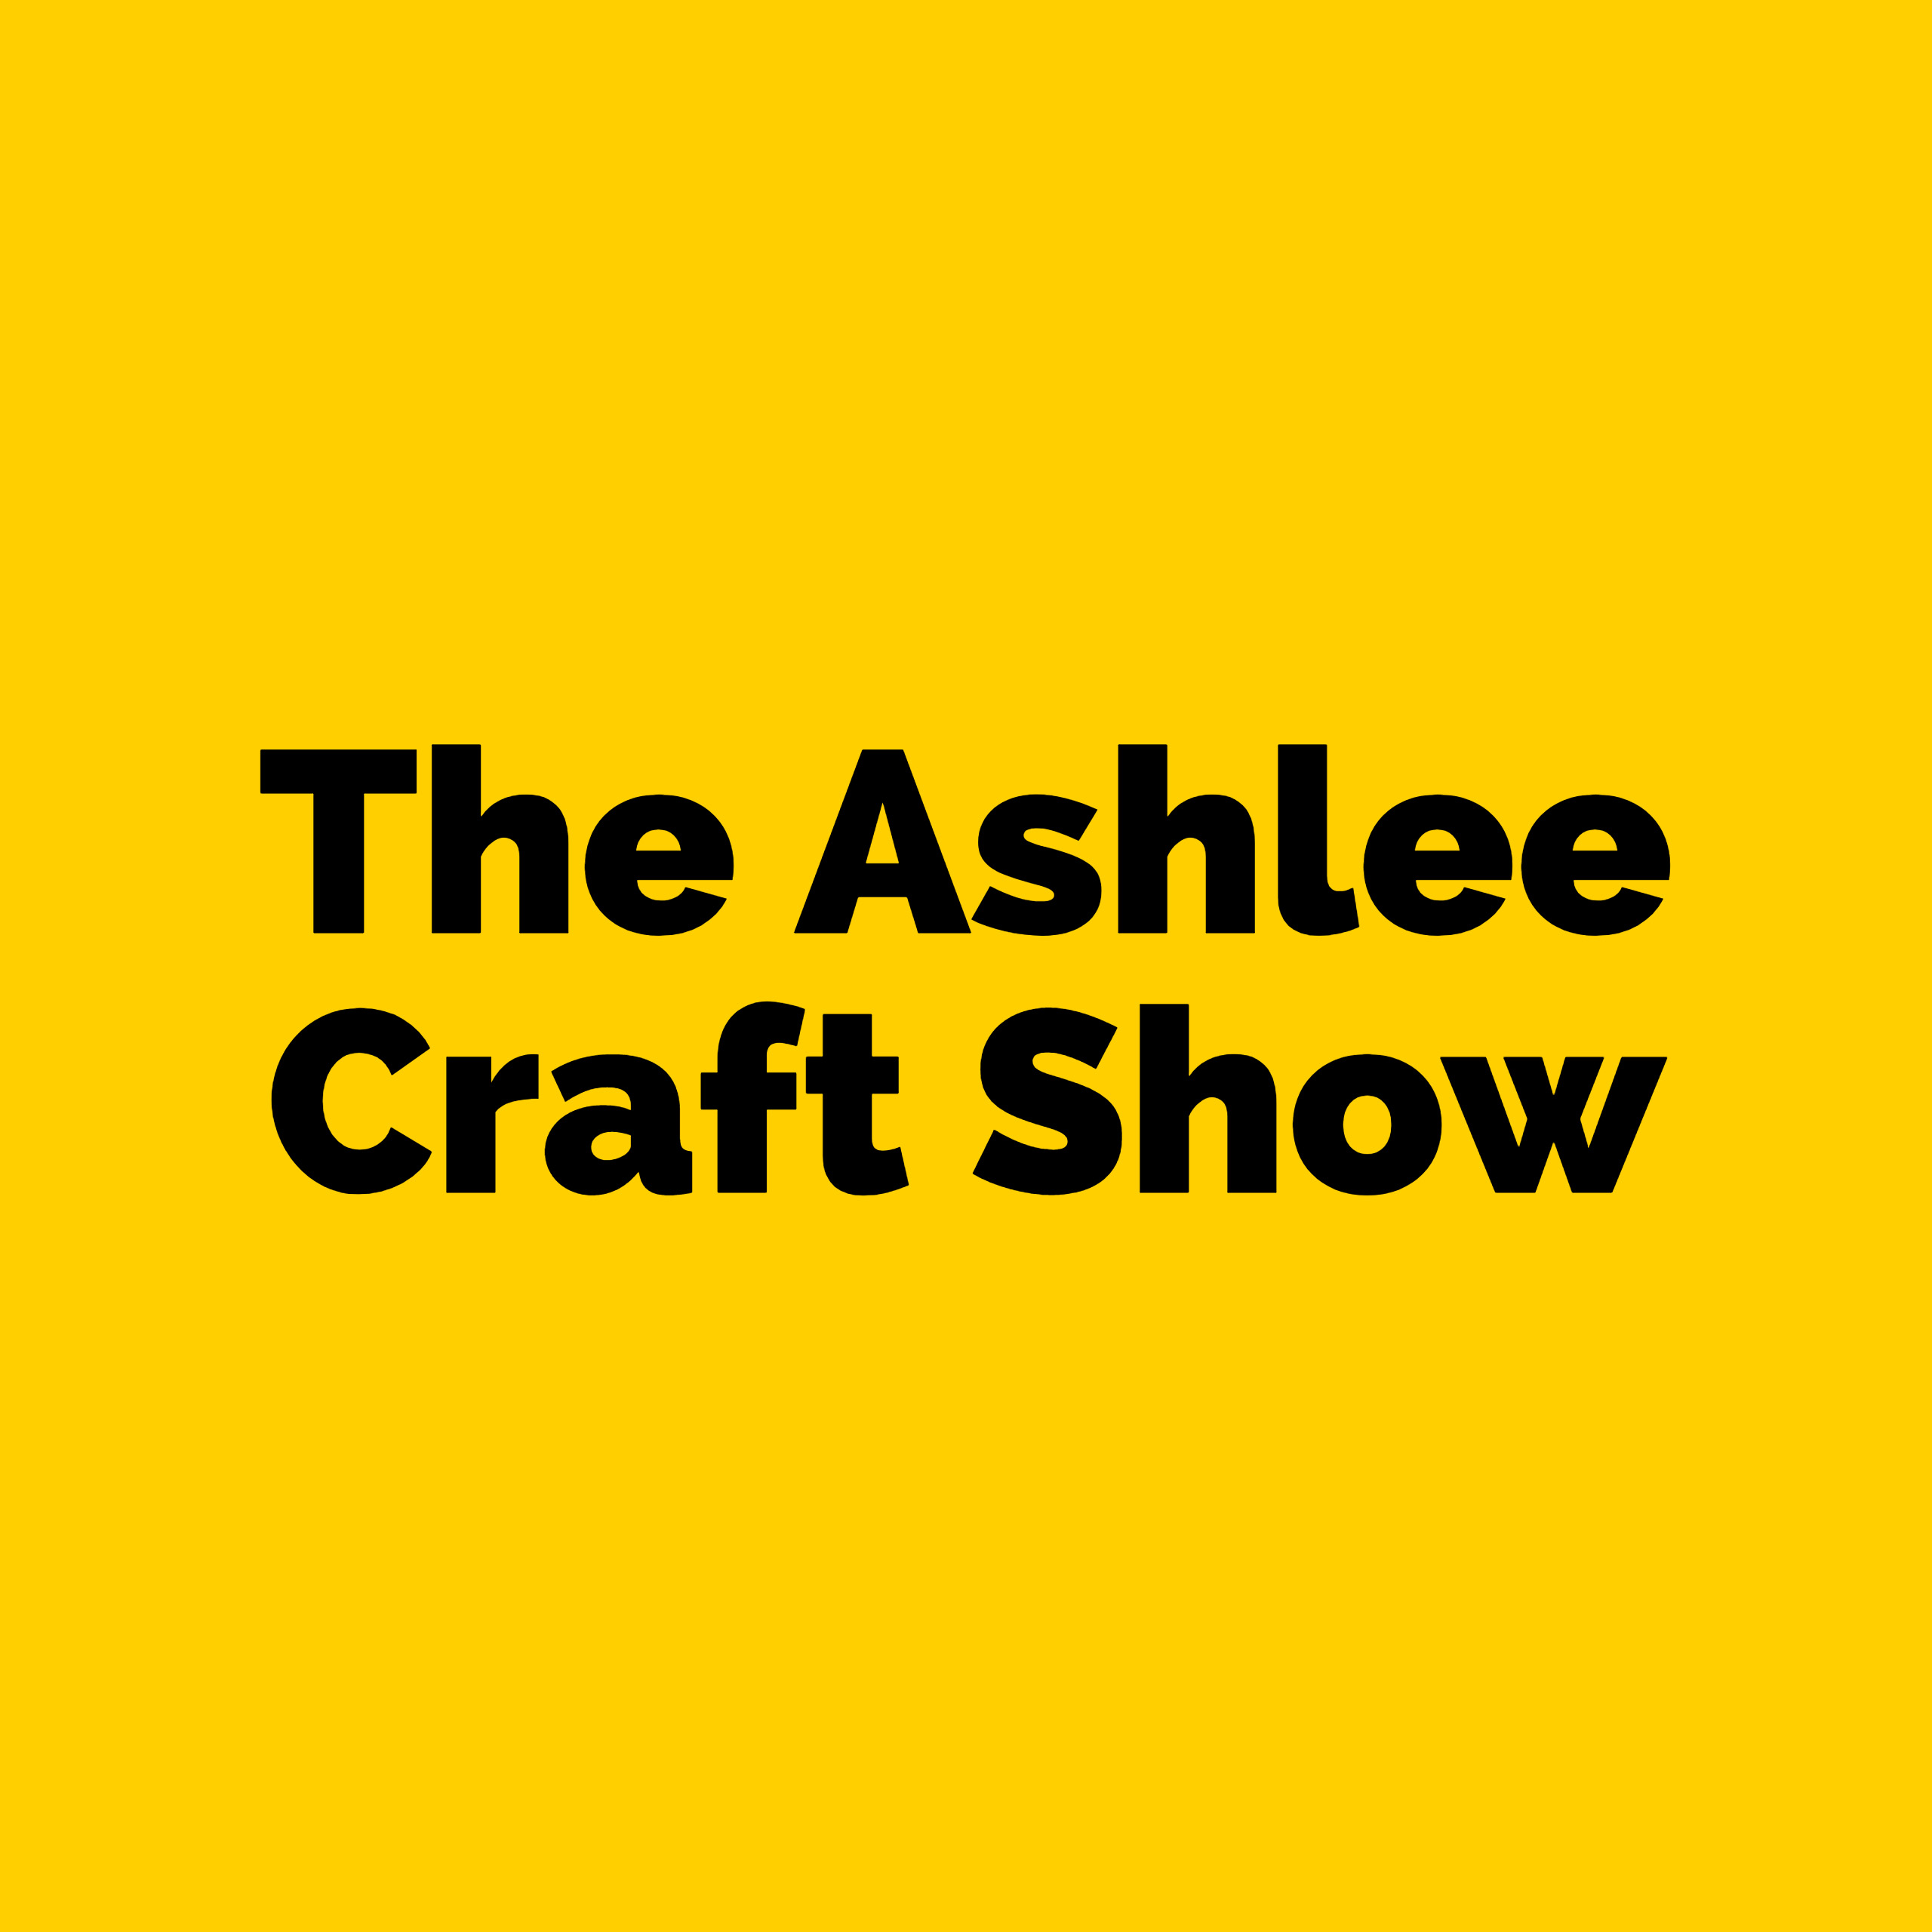 The Ashlee Craft Show